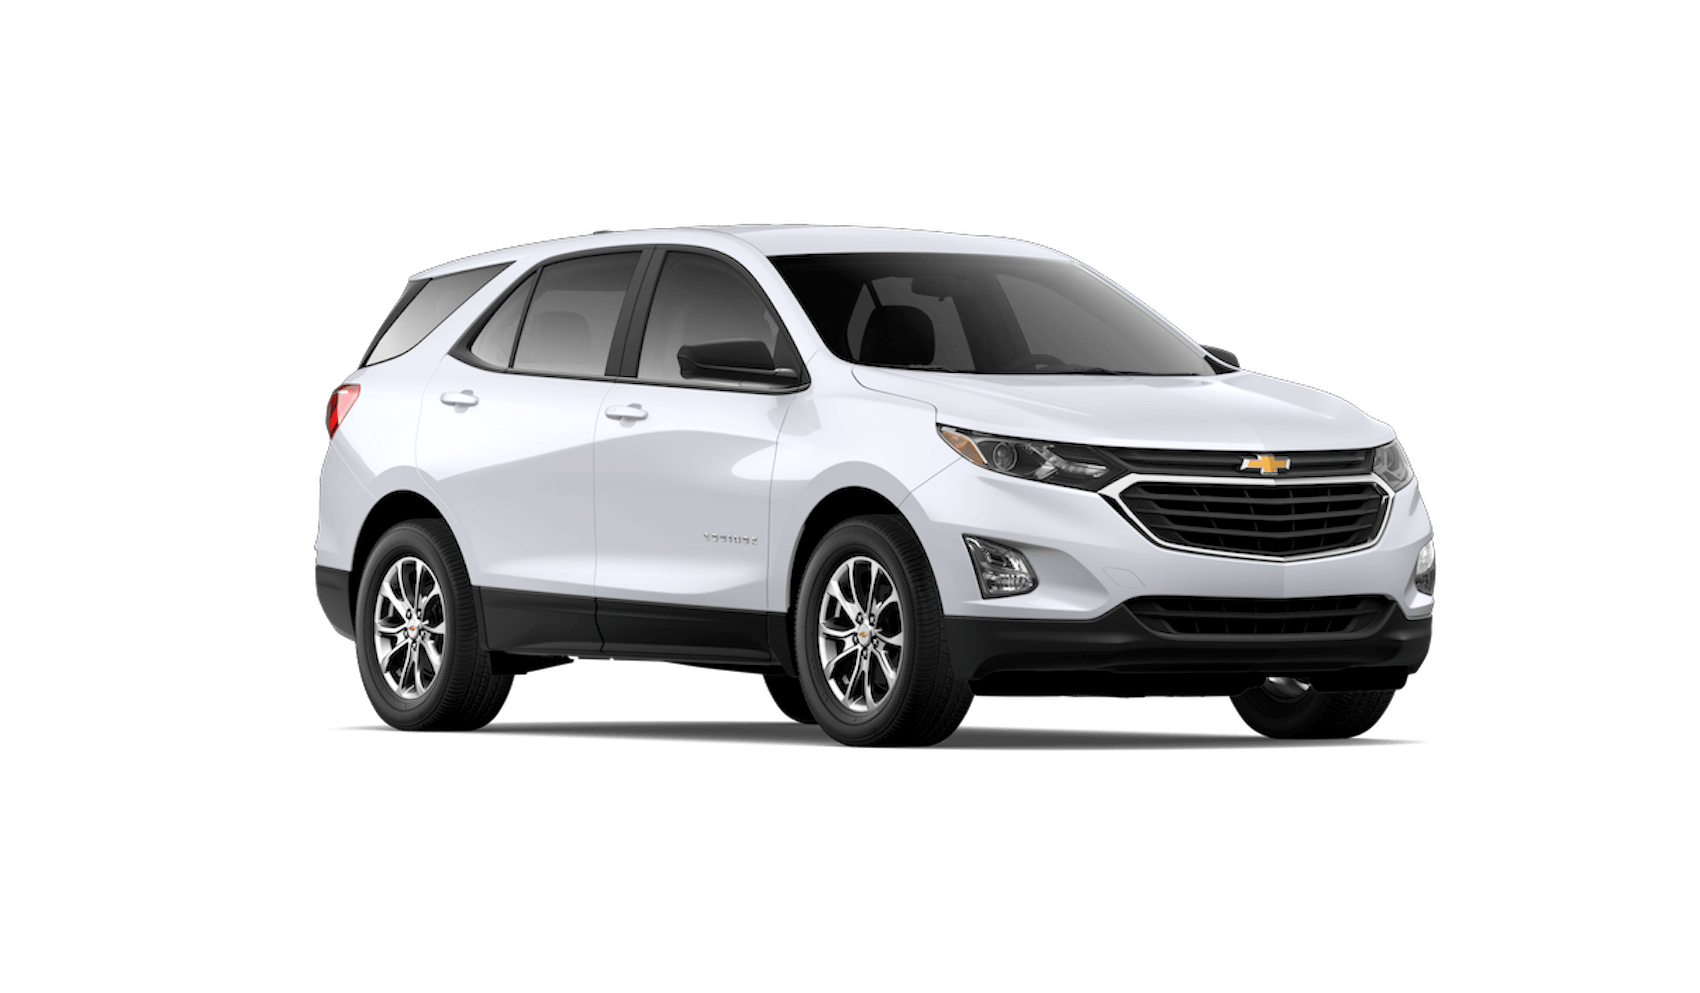 Chevy Equinox IIHS Safety